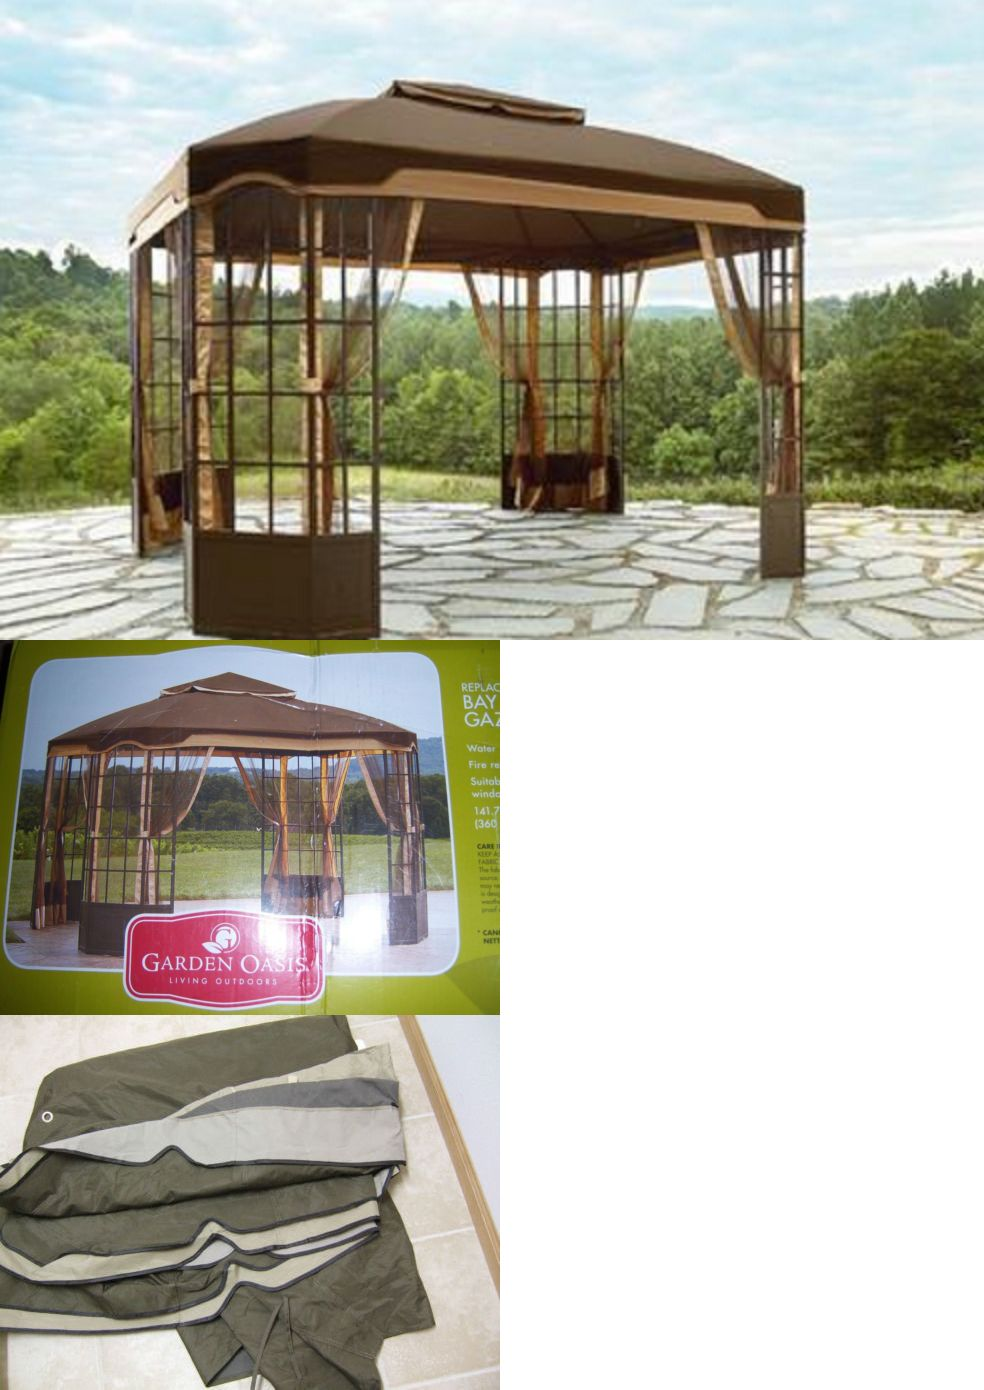 Gazebos 180995 Garden Oasis Bay Window Gazebo Replacement Canopy 12 X 10 Sears Kmart Limited & Gazebos 180995: Garden Oasis Bay Window Gazebo Replacement Canopy ...